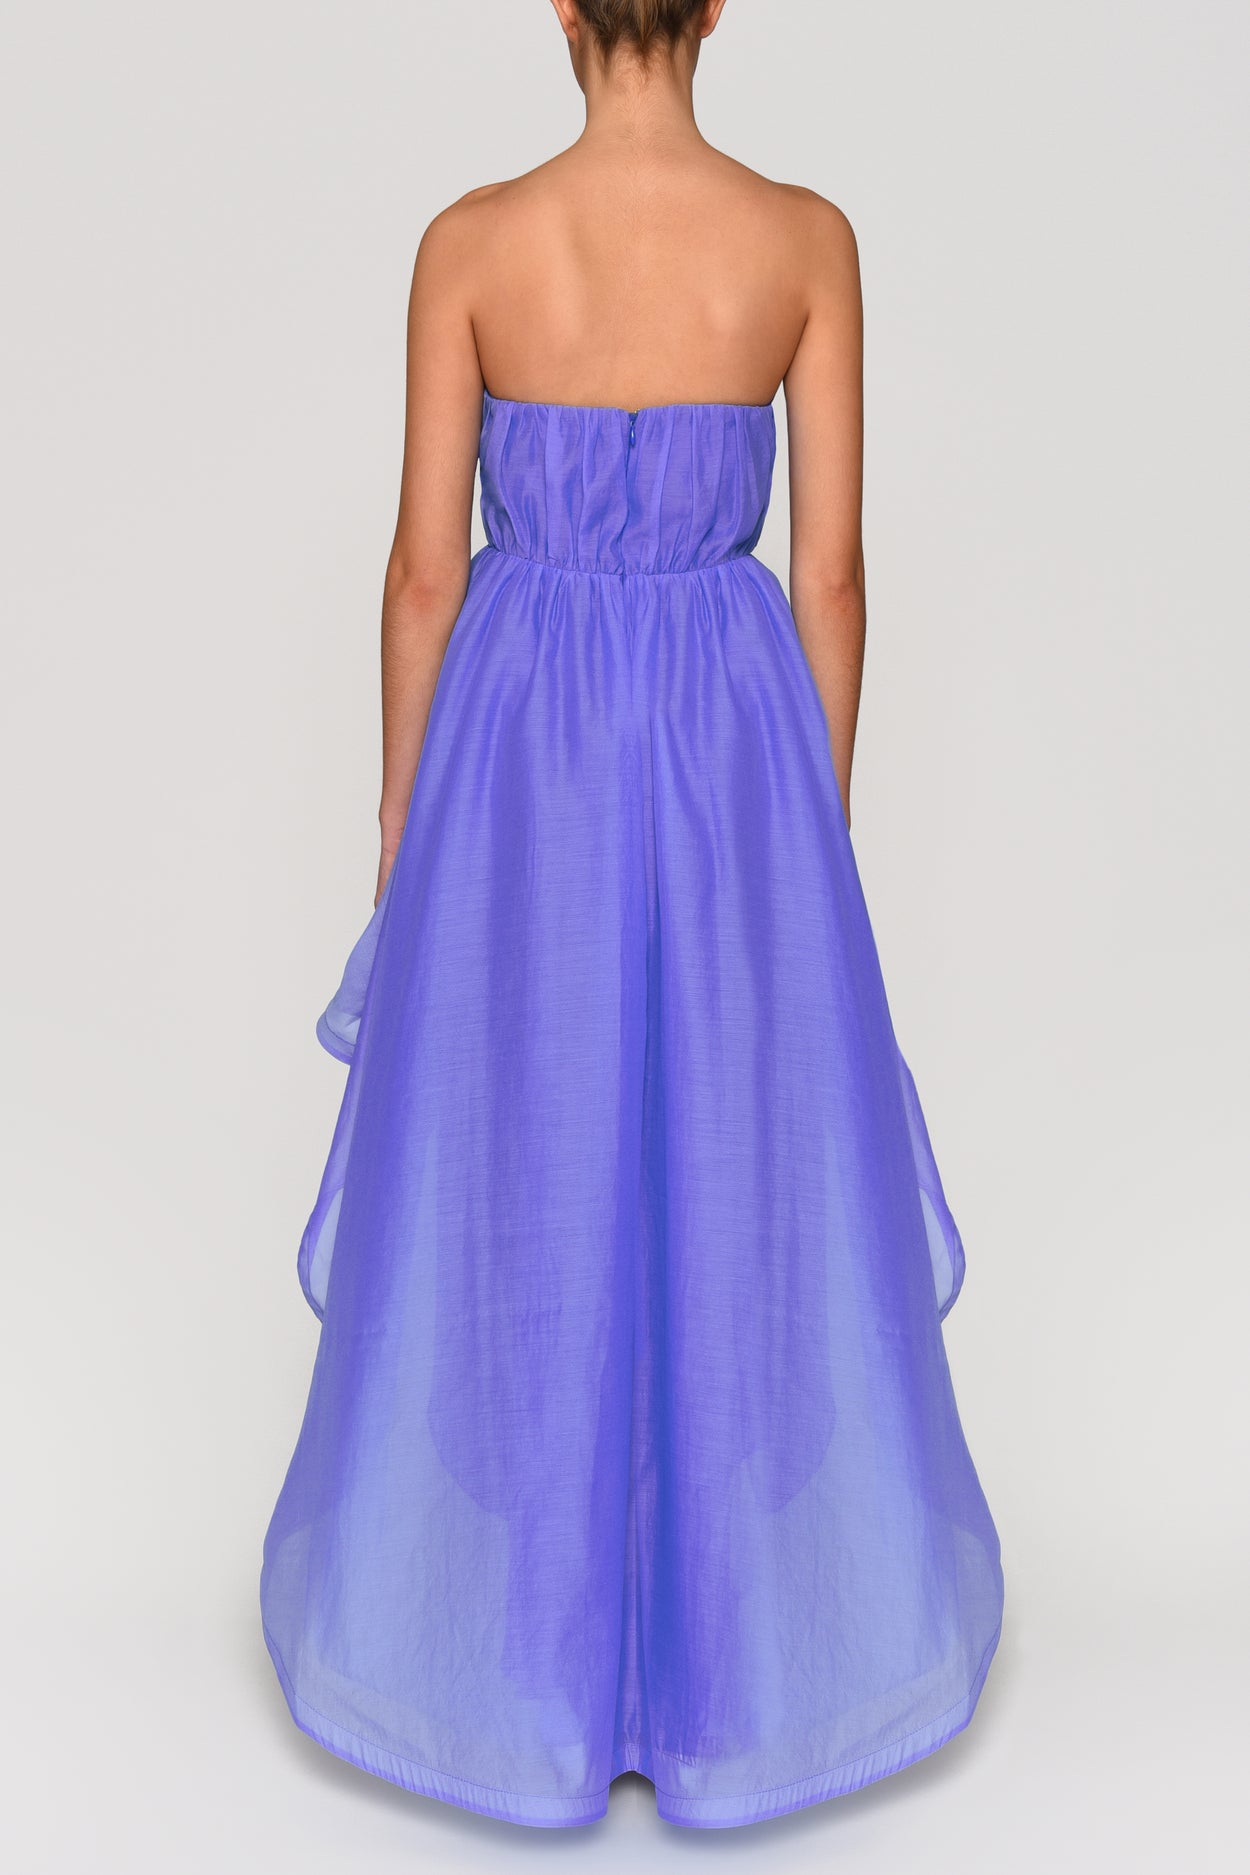 Corn Flower Blue Strapless Tulle Waterfall Hem Dress